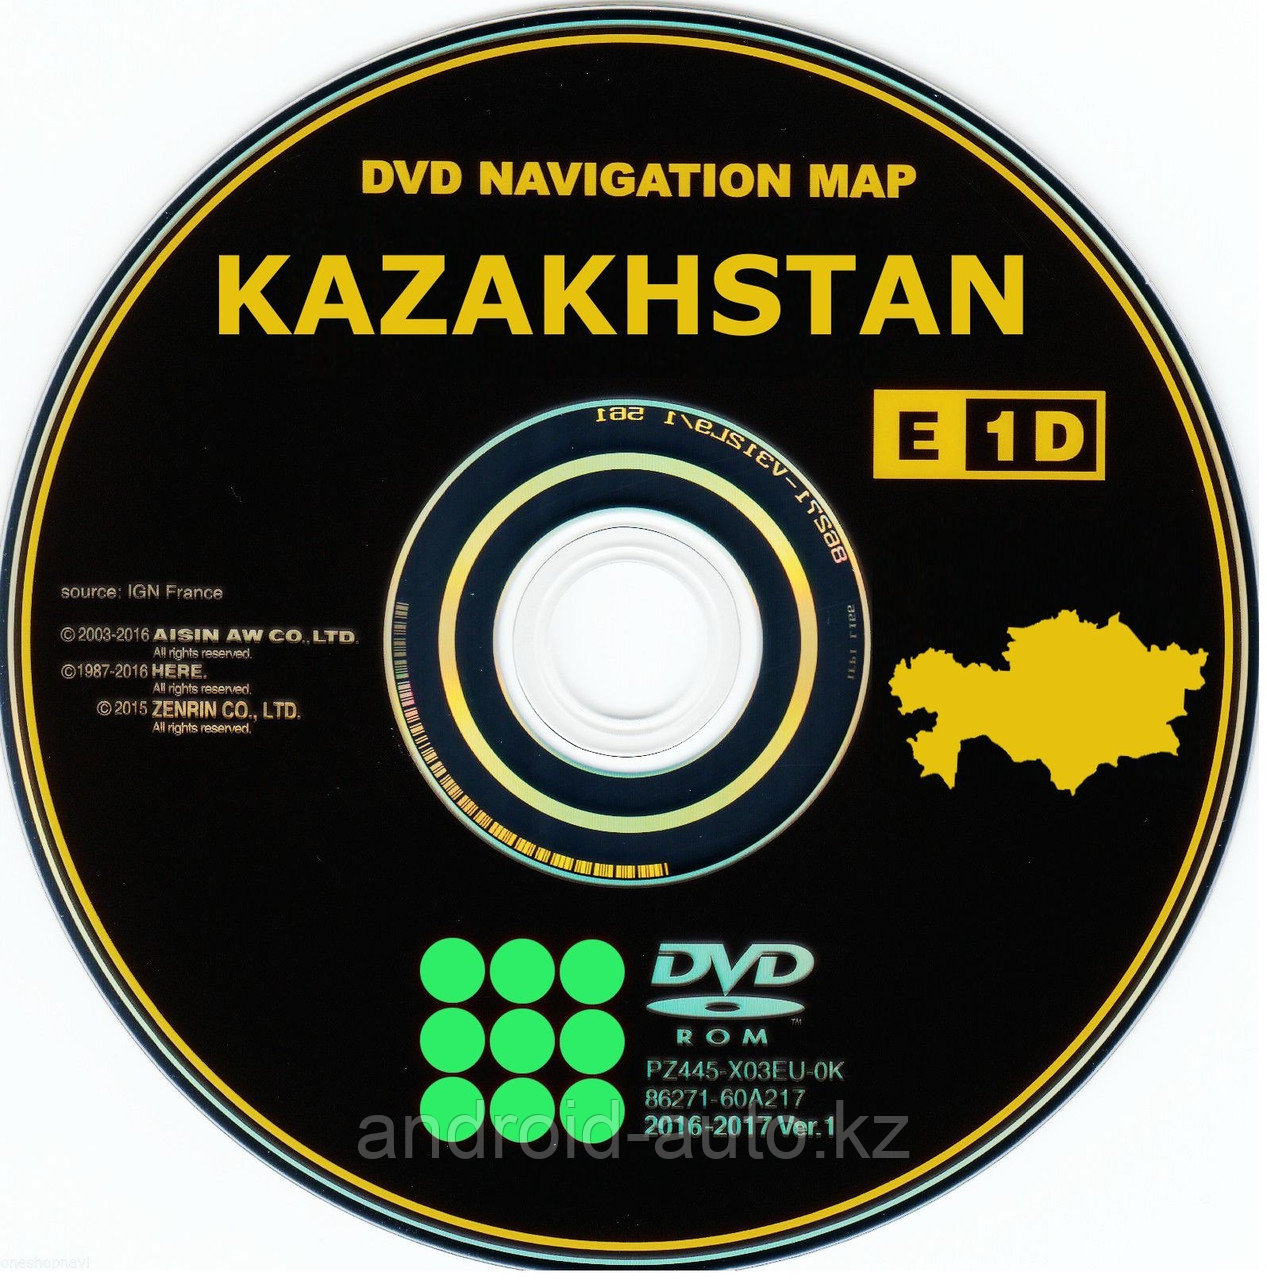 GEN-5 DVD NAVIGATION MAP of KAZAKHSTAN - (LEXUS DENSO)